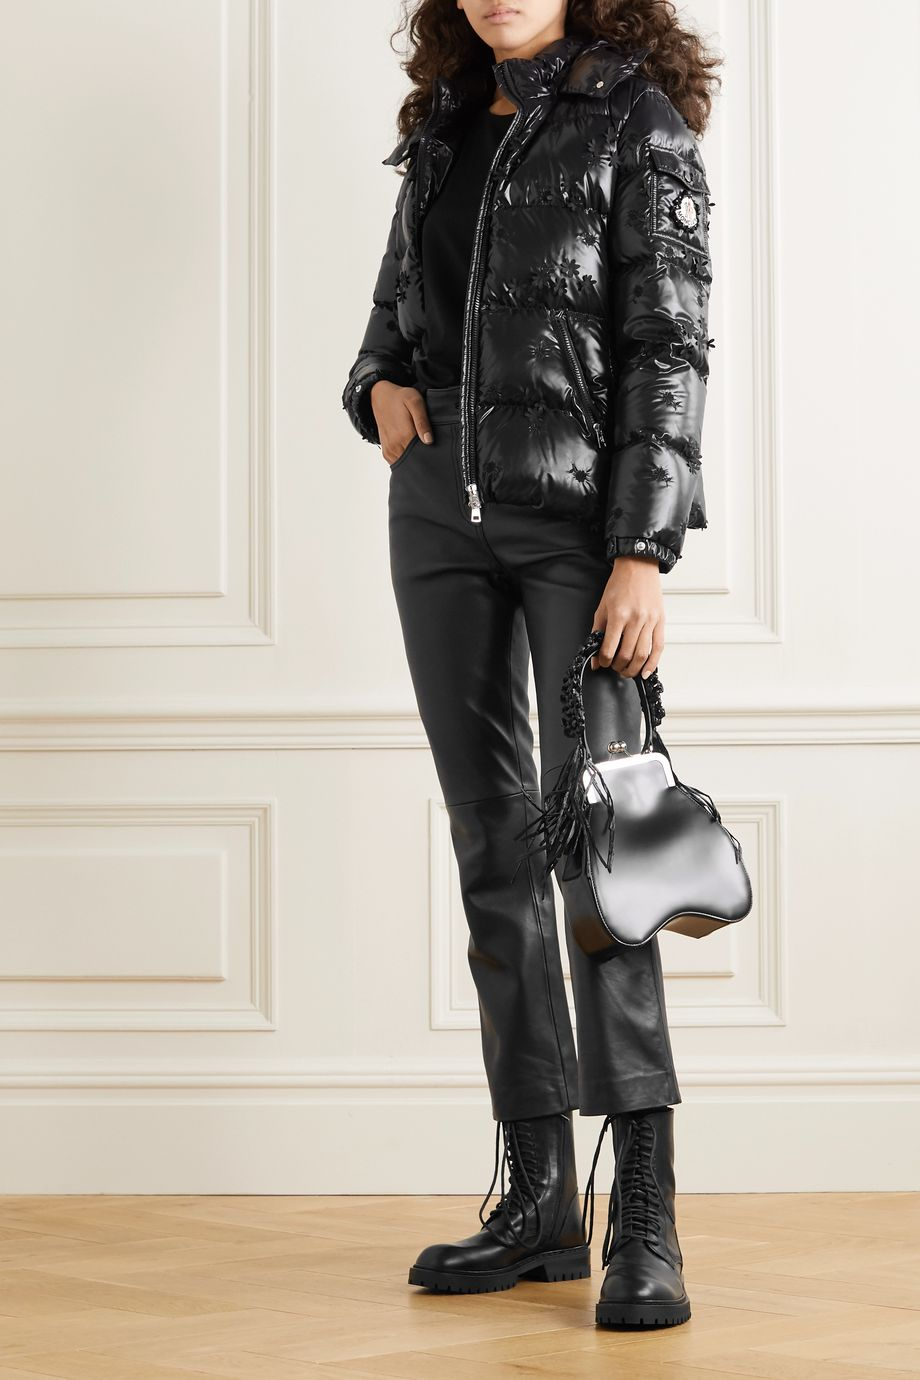 Moncler Genius +4 Simone Rocha Callitris appliquéd hooded quilted glossed-shell down jacket